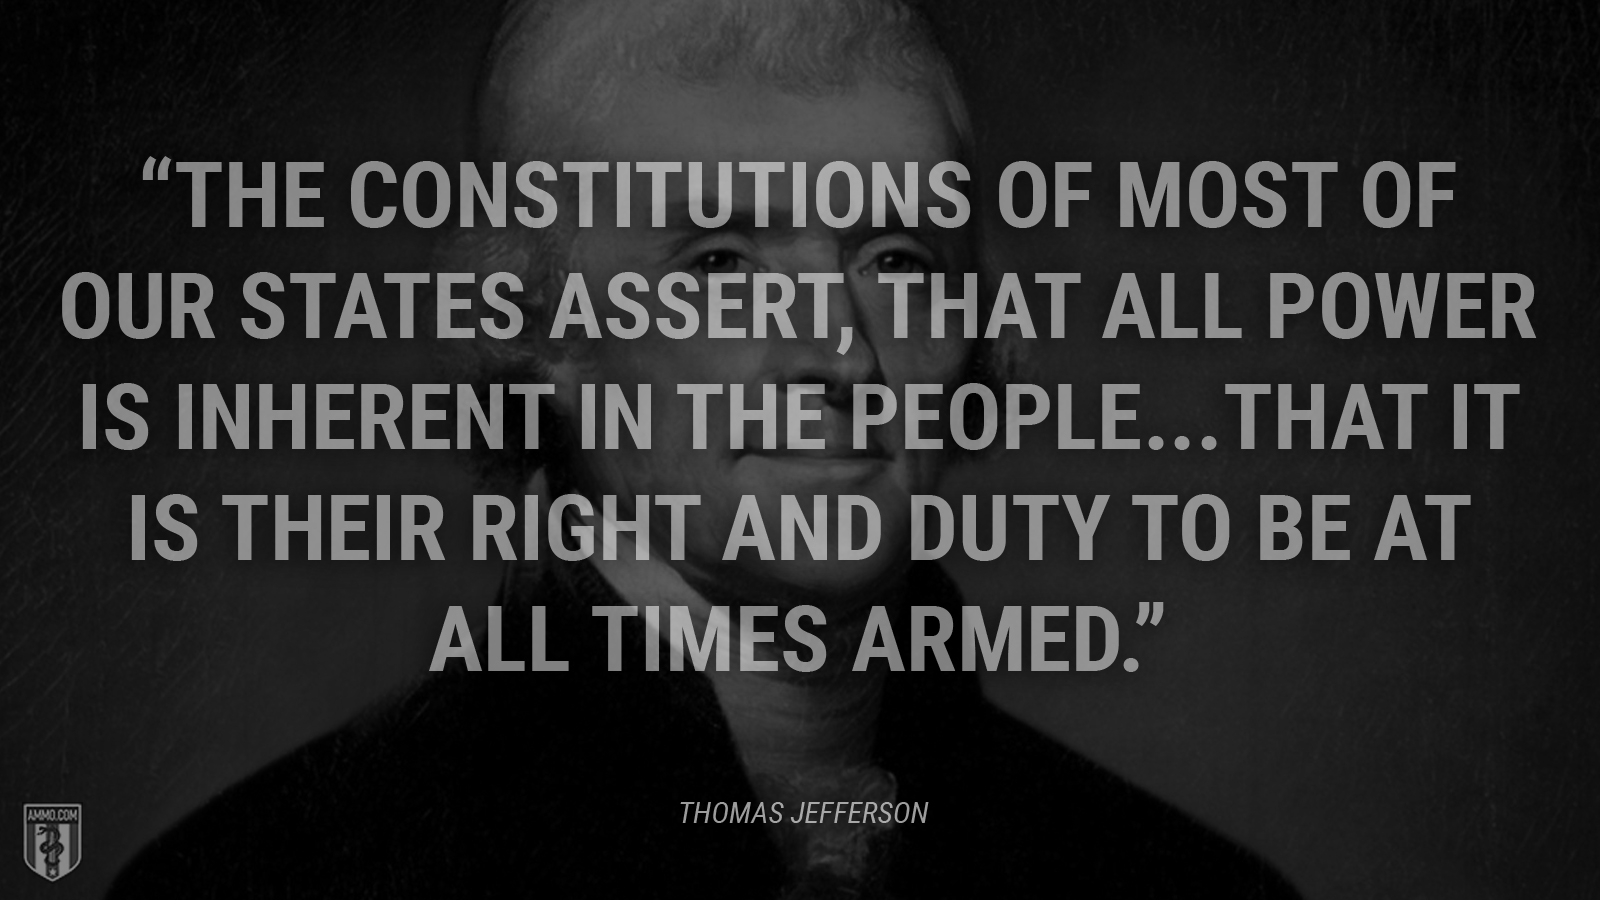 """The constitutions of most of our States assert, that all power is inherent in the people...that it is their right and duty to be at all times armed."" - Thomas Jefferson"